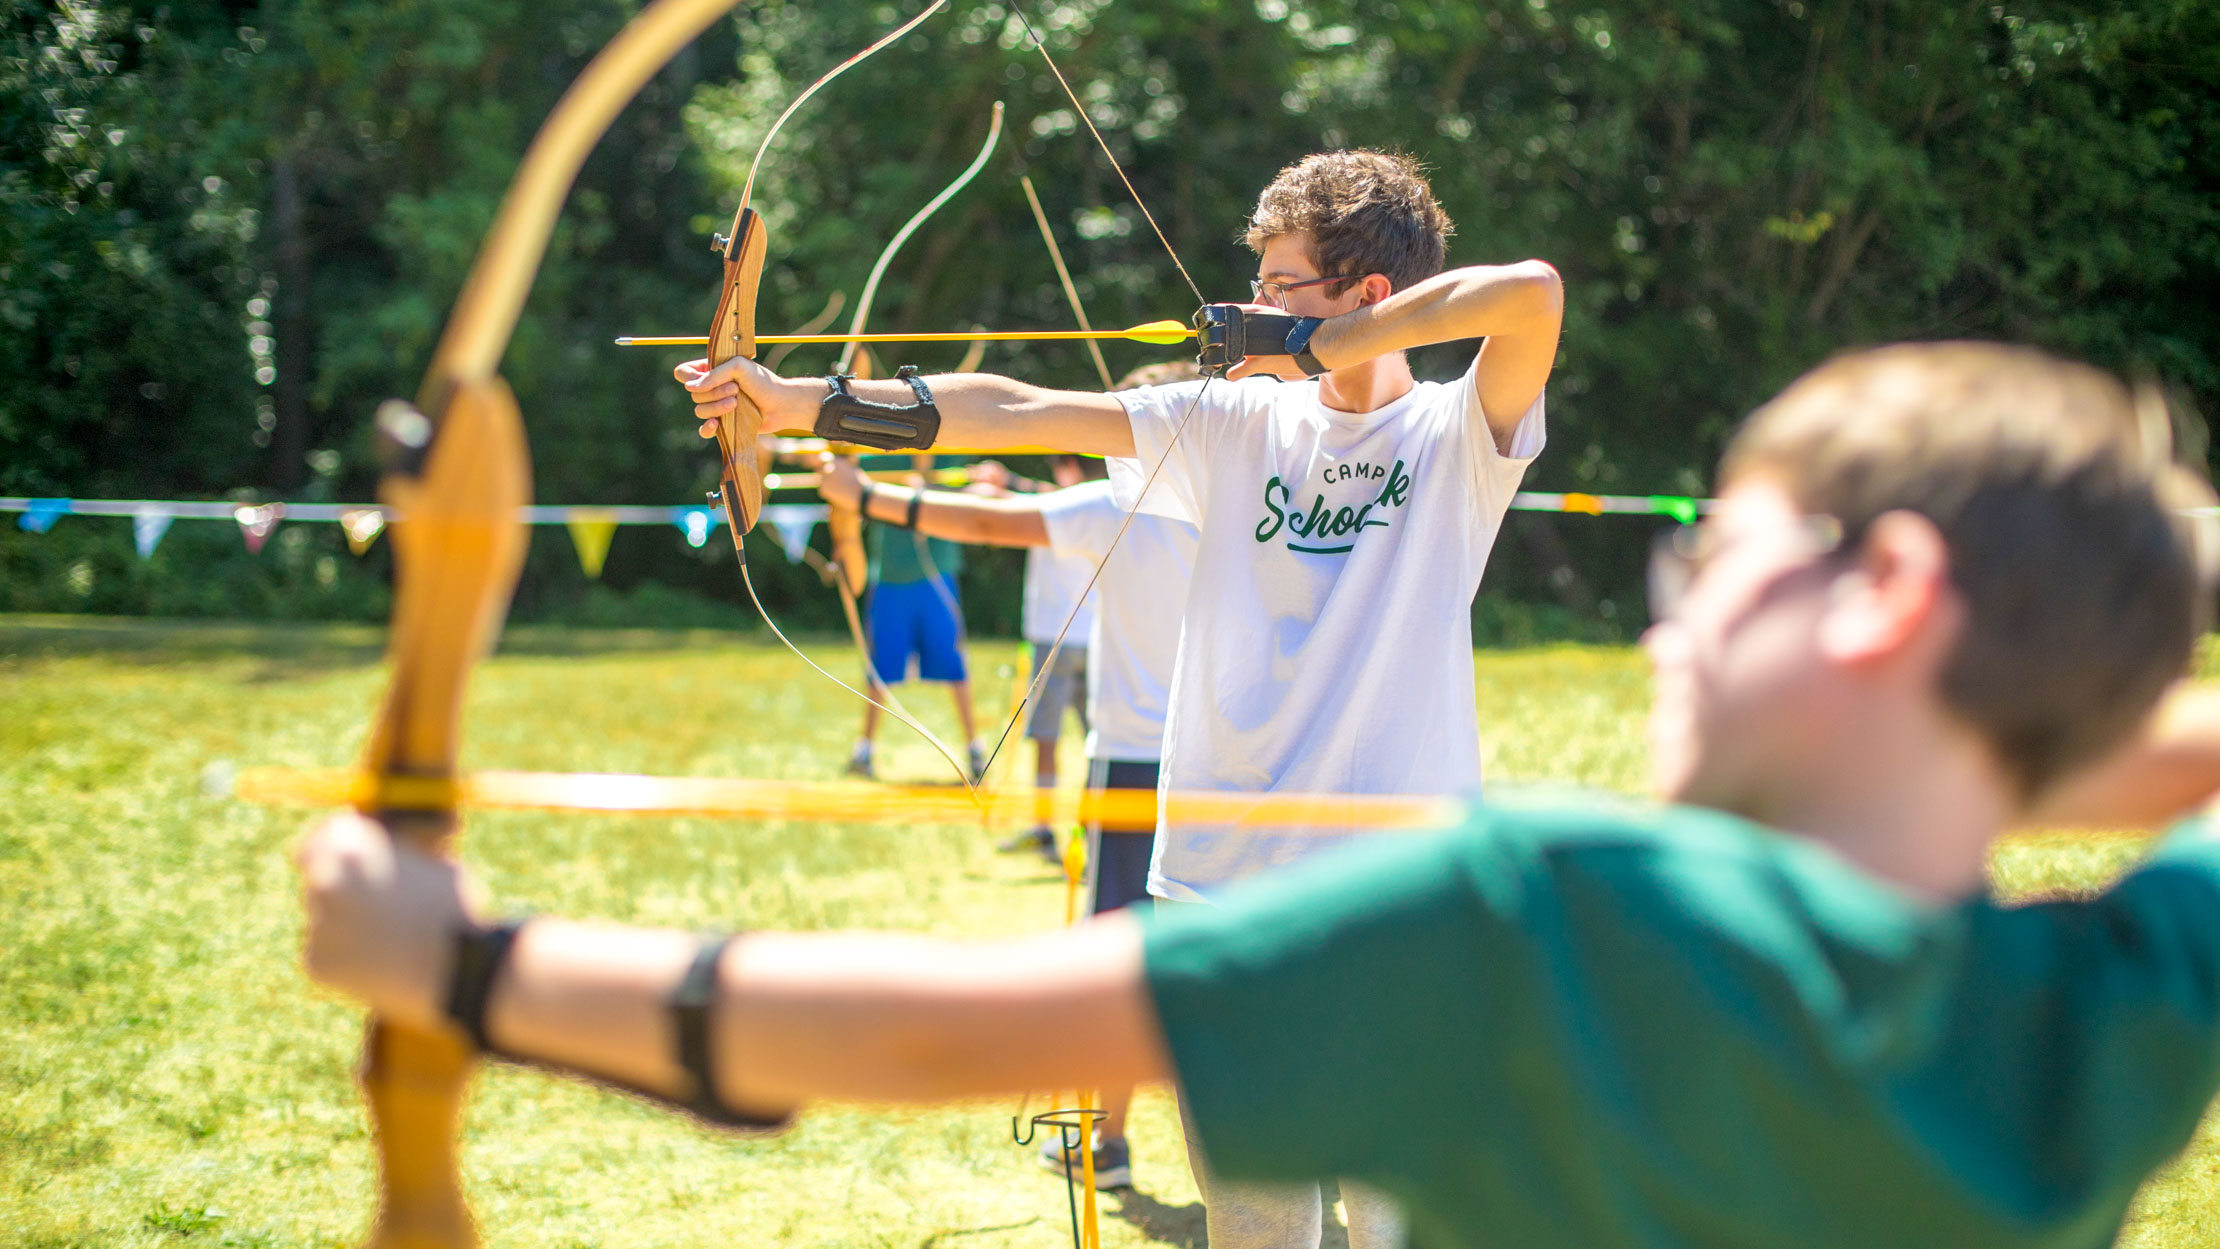 Boys doing archery at summer camp